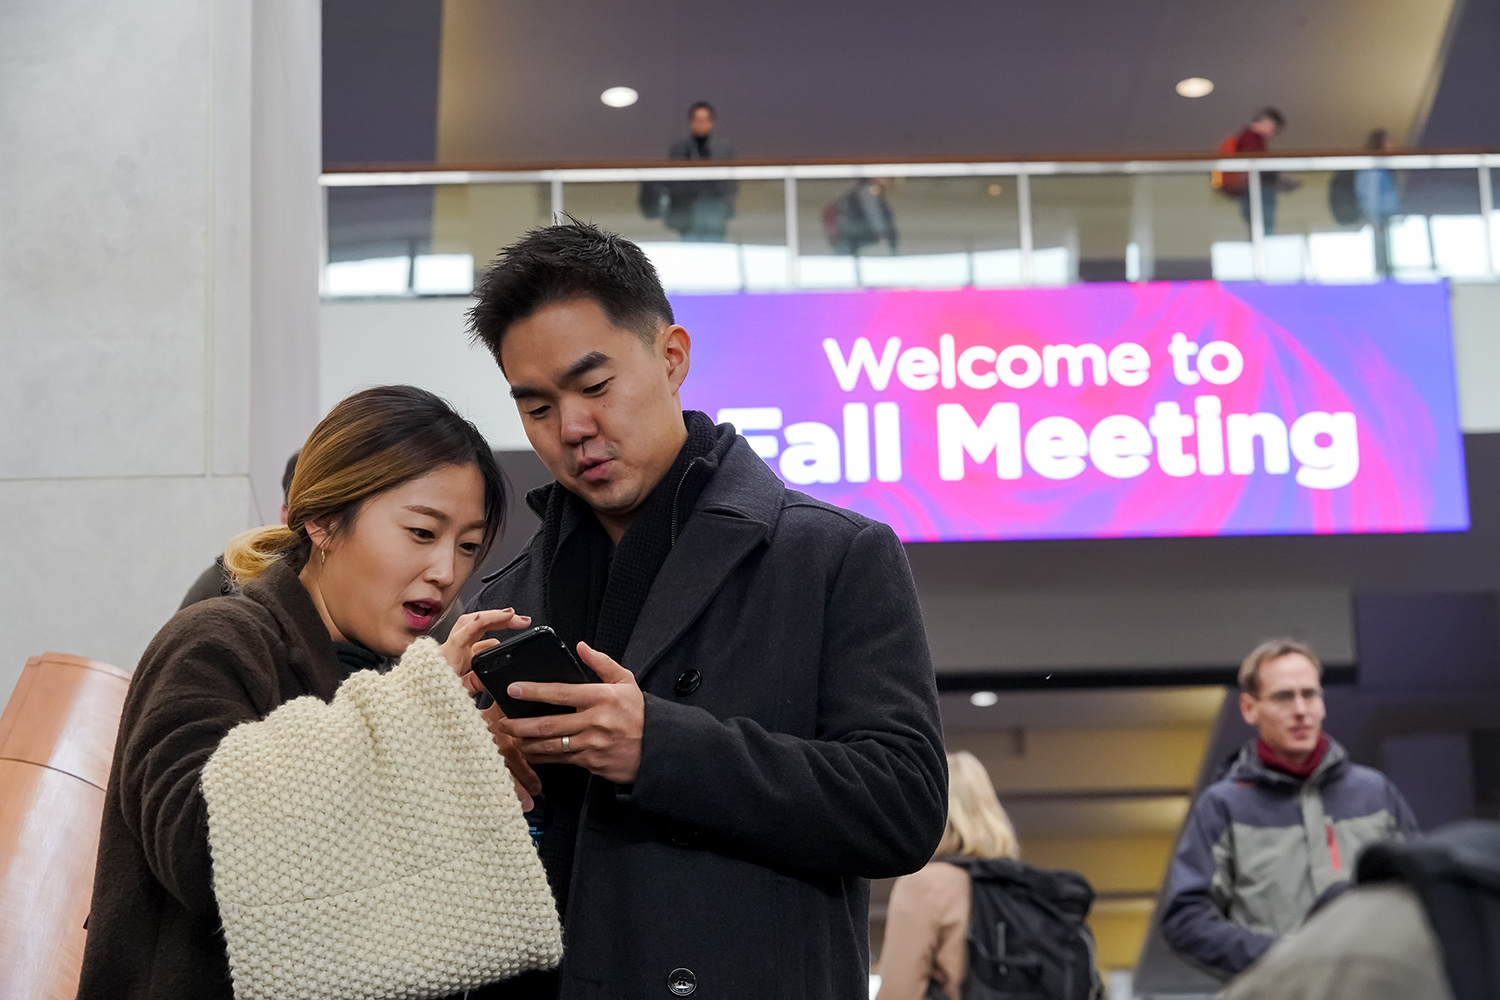 A man and a woman look at a phone with a Welcome to Fall Meeting banner behind them